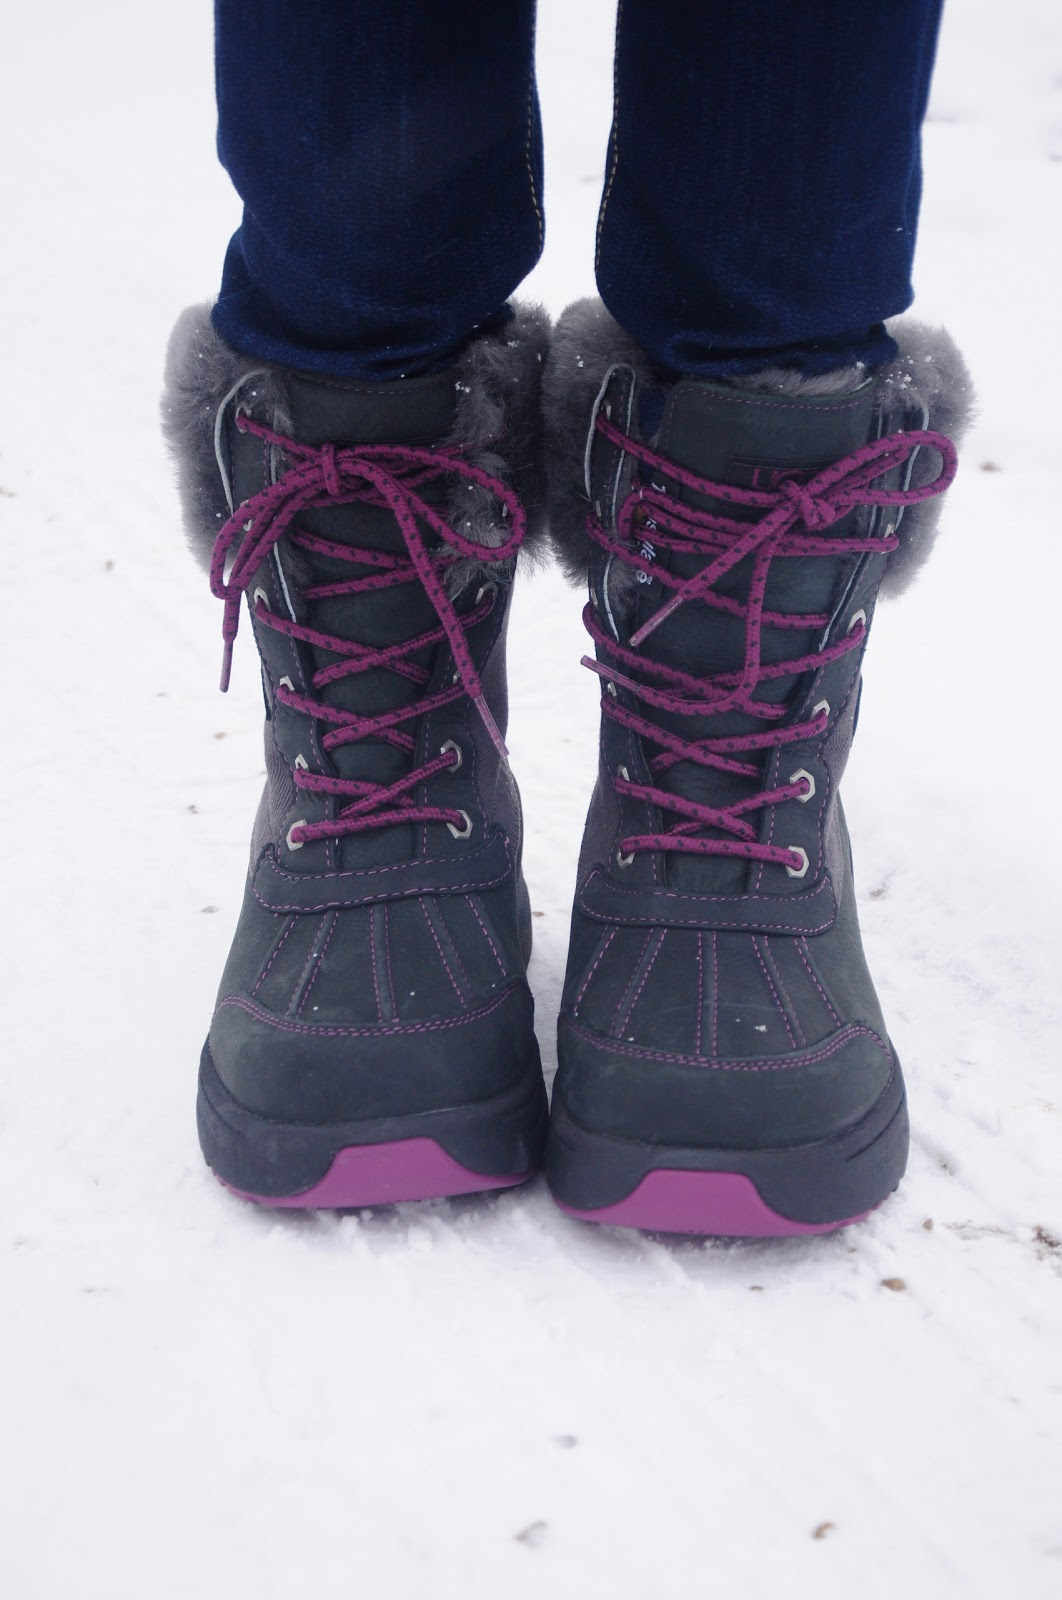 UGG with Hoka technology winter boot